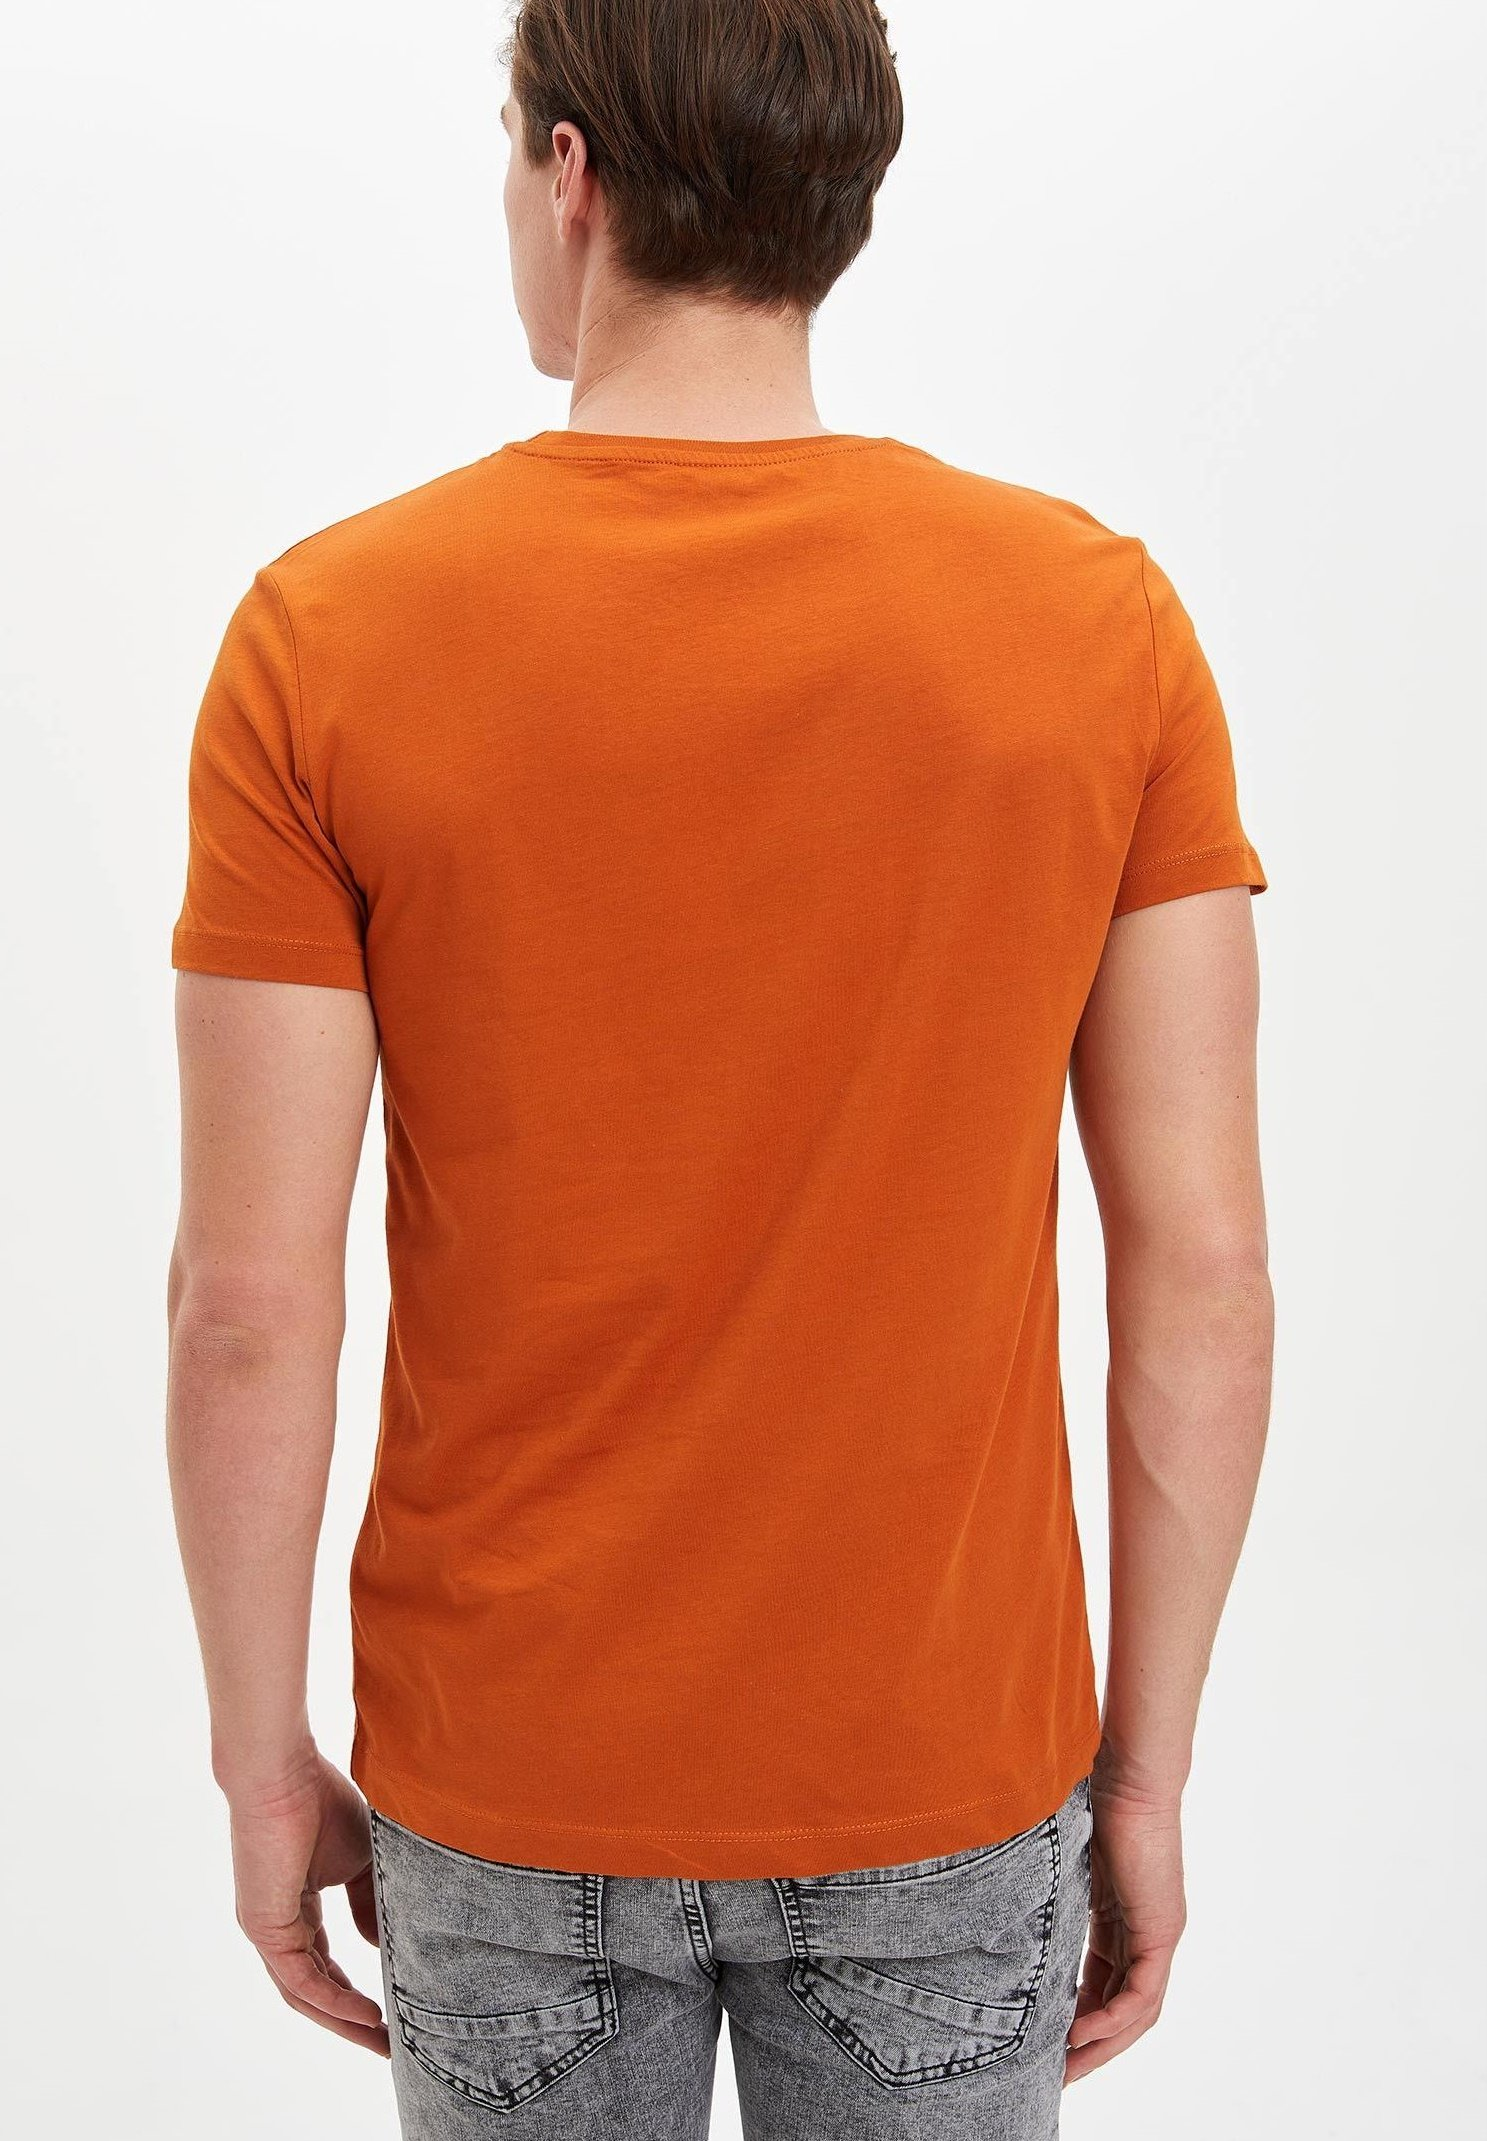 DeFacto Print T-shirt - brown rXnSt